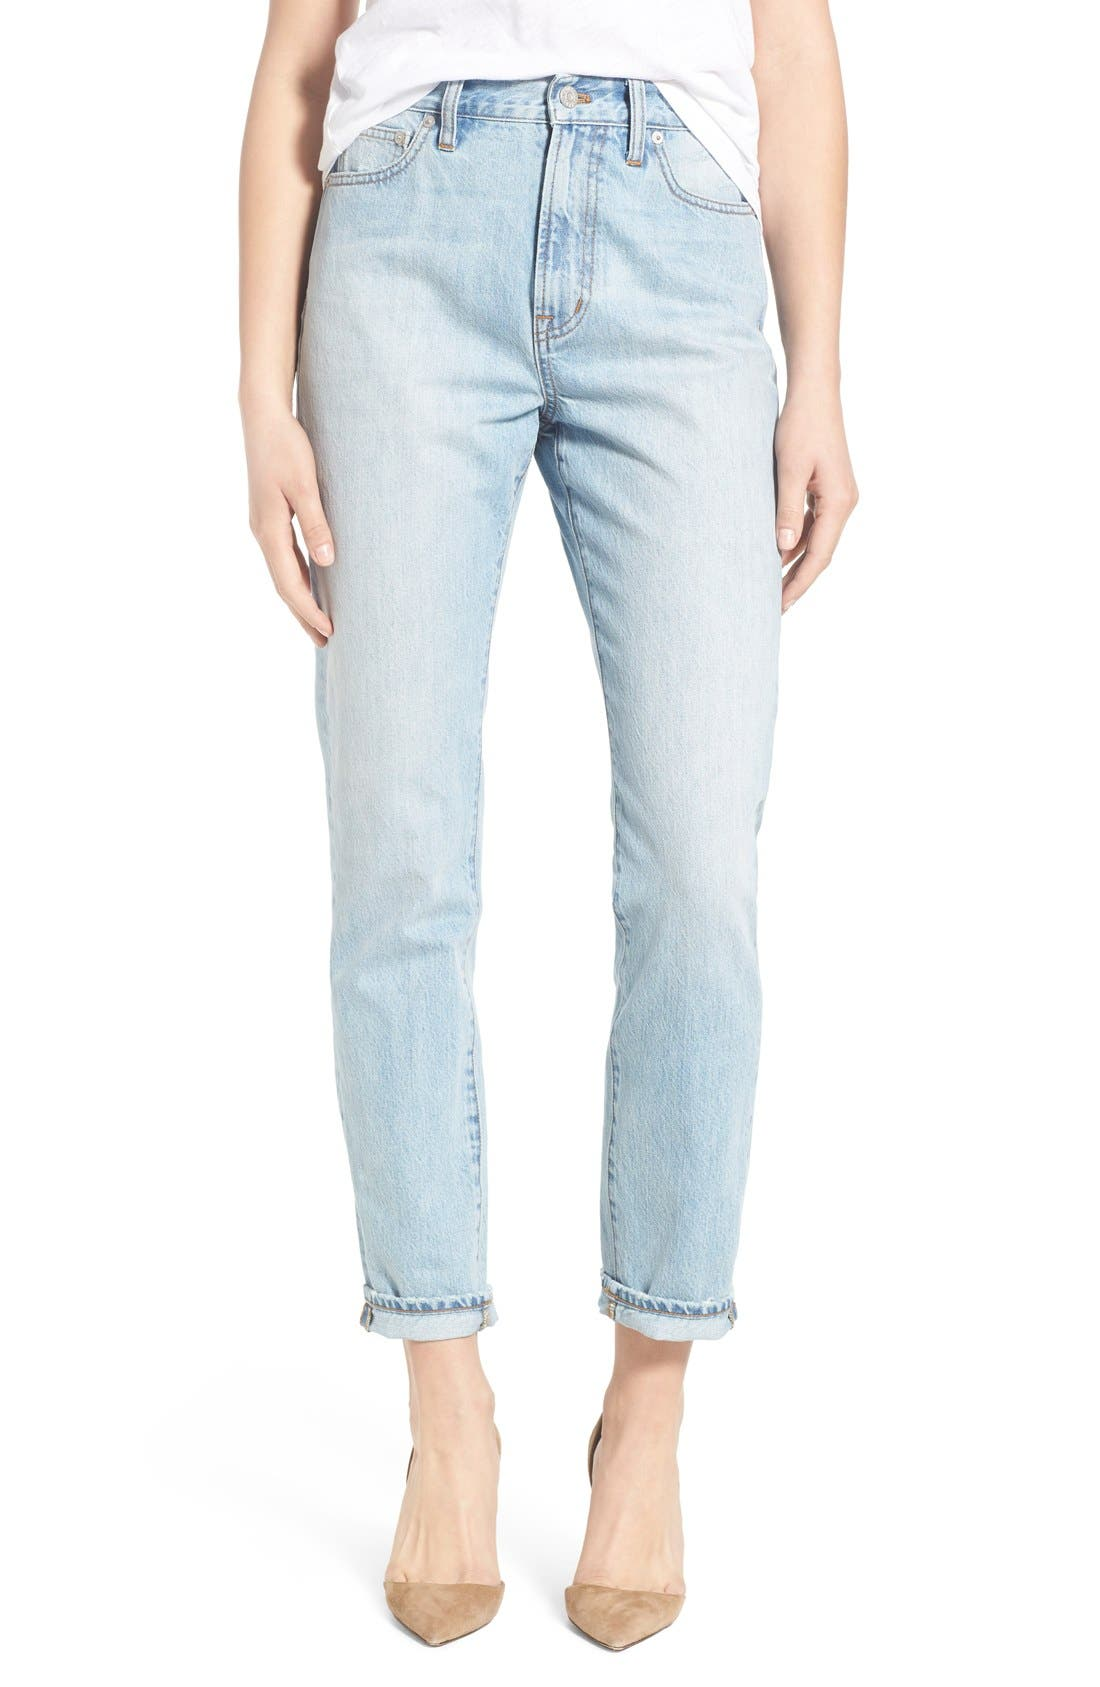 Madewell 'Perfect Summer' High Rise Ankle Jeans (Fitzgerald Wash)